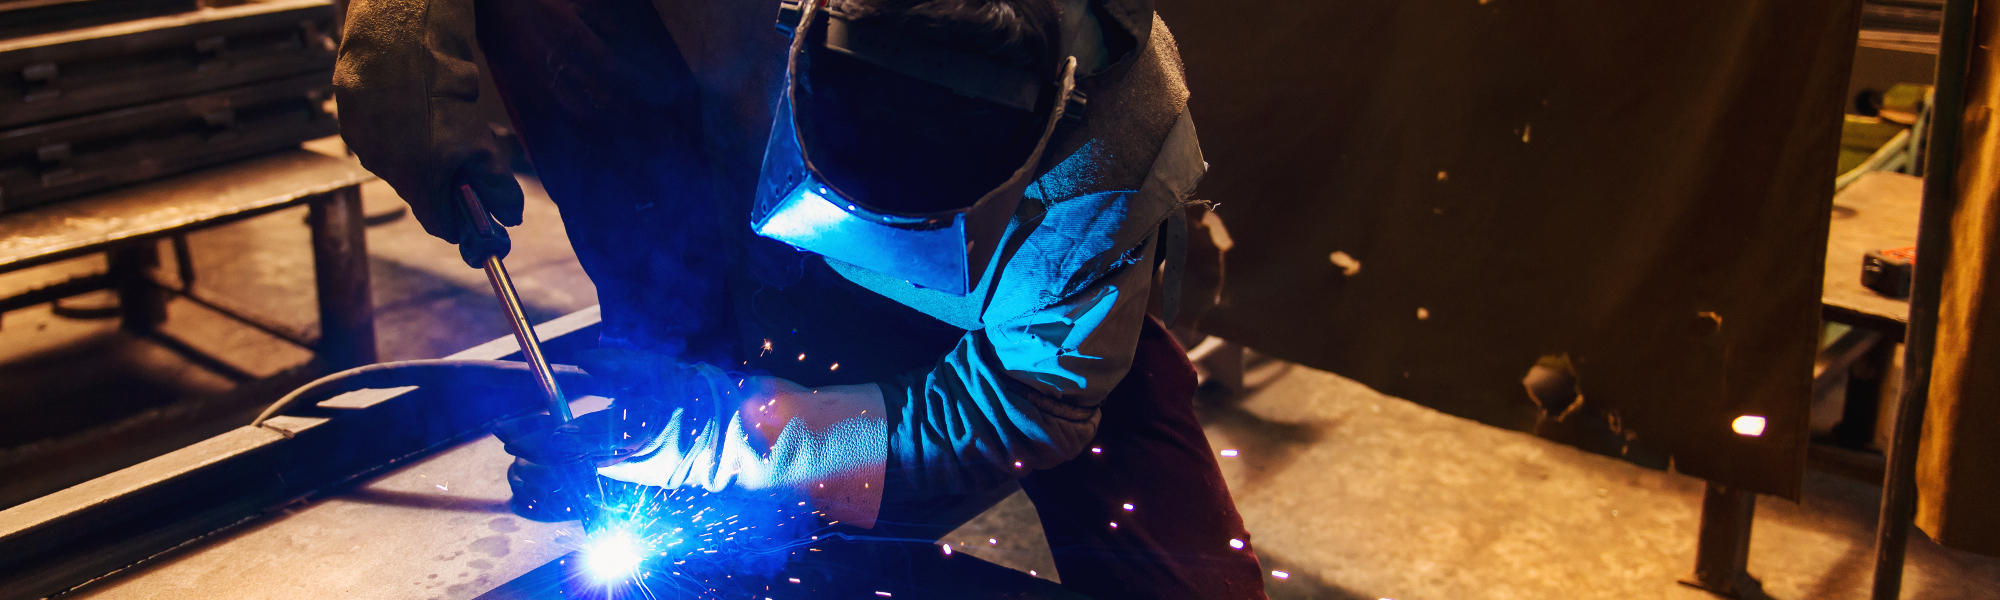 Welding Technology  Background Pic